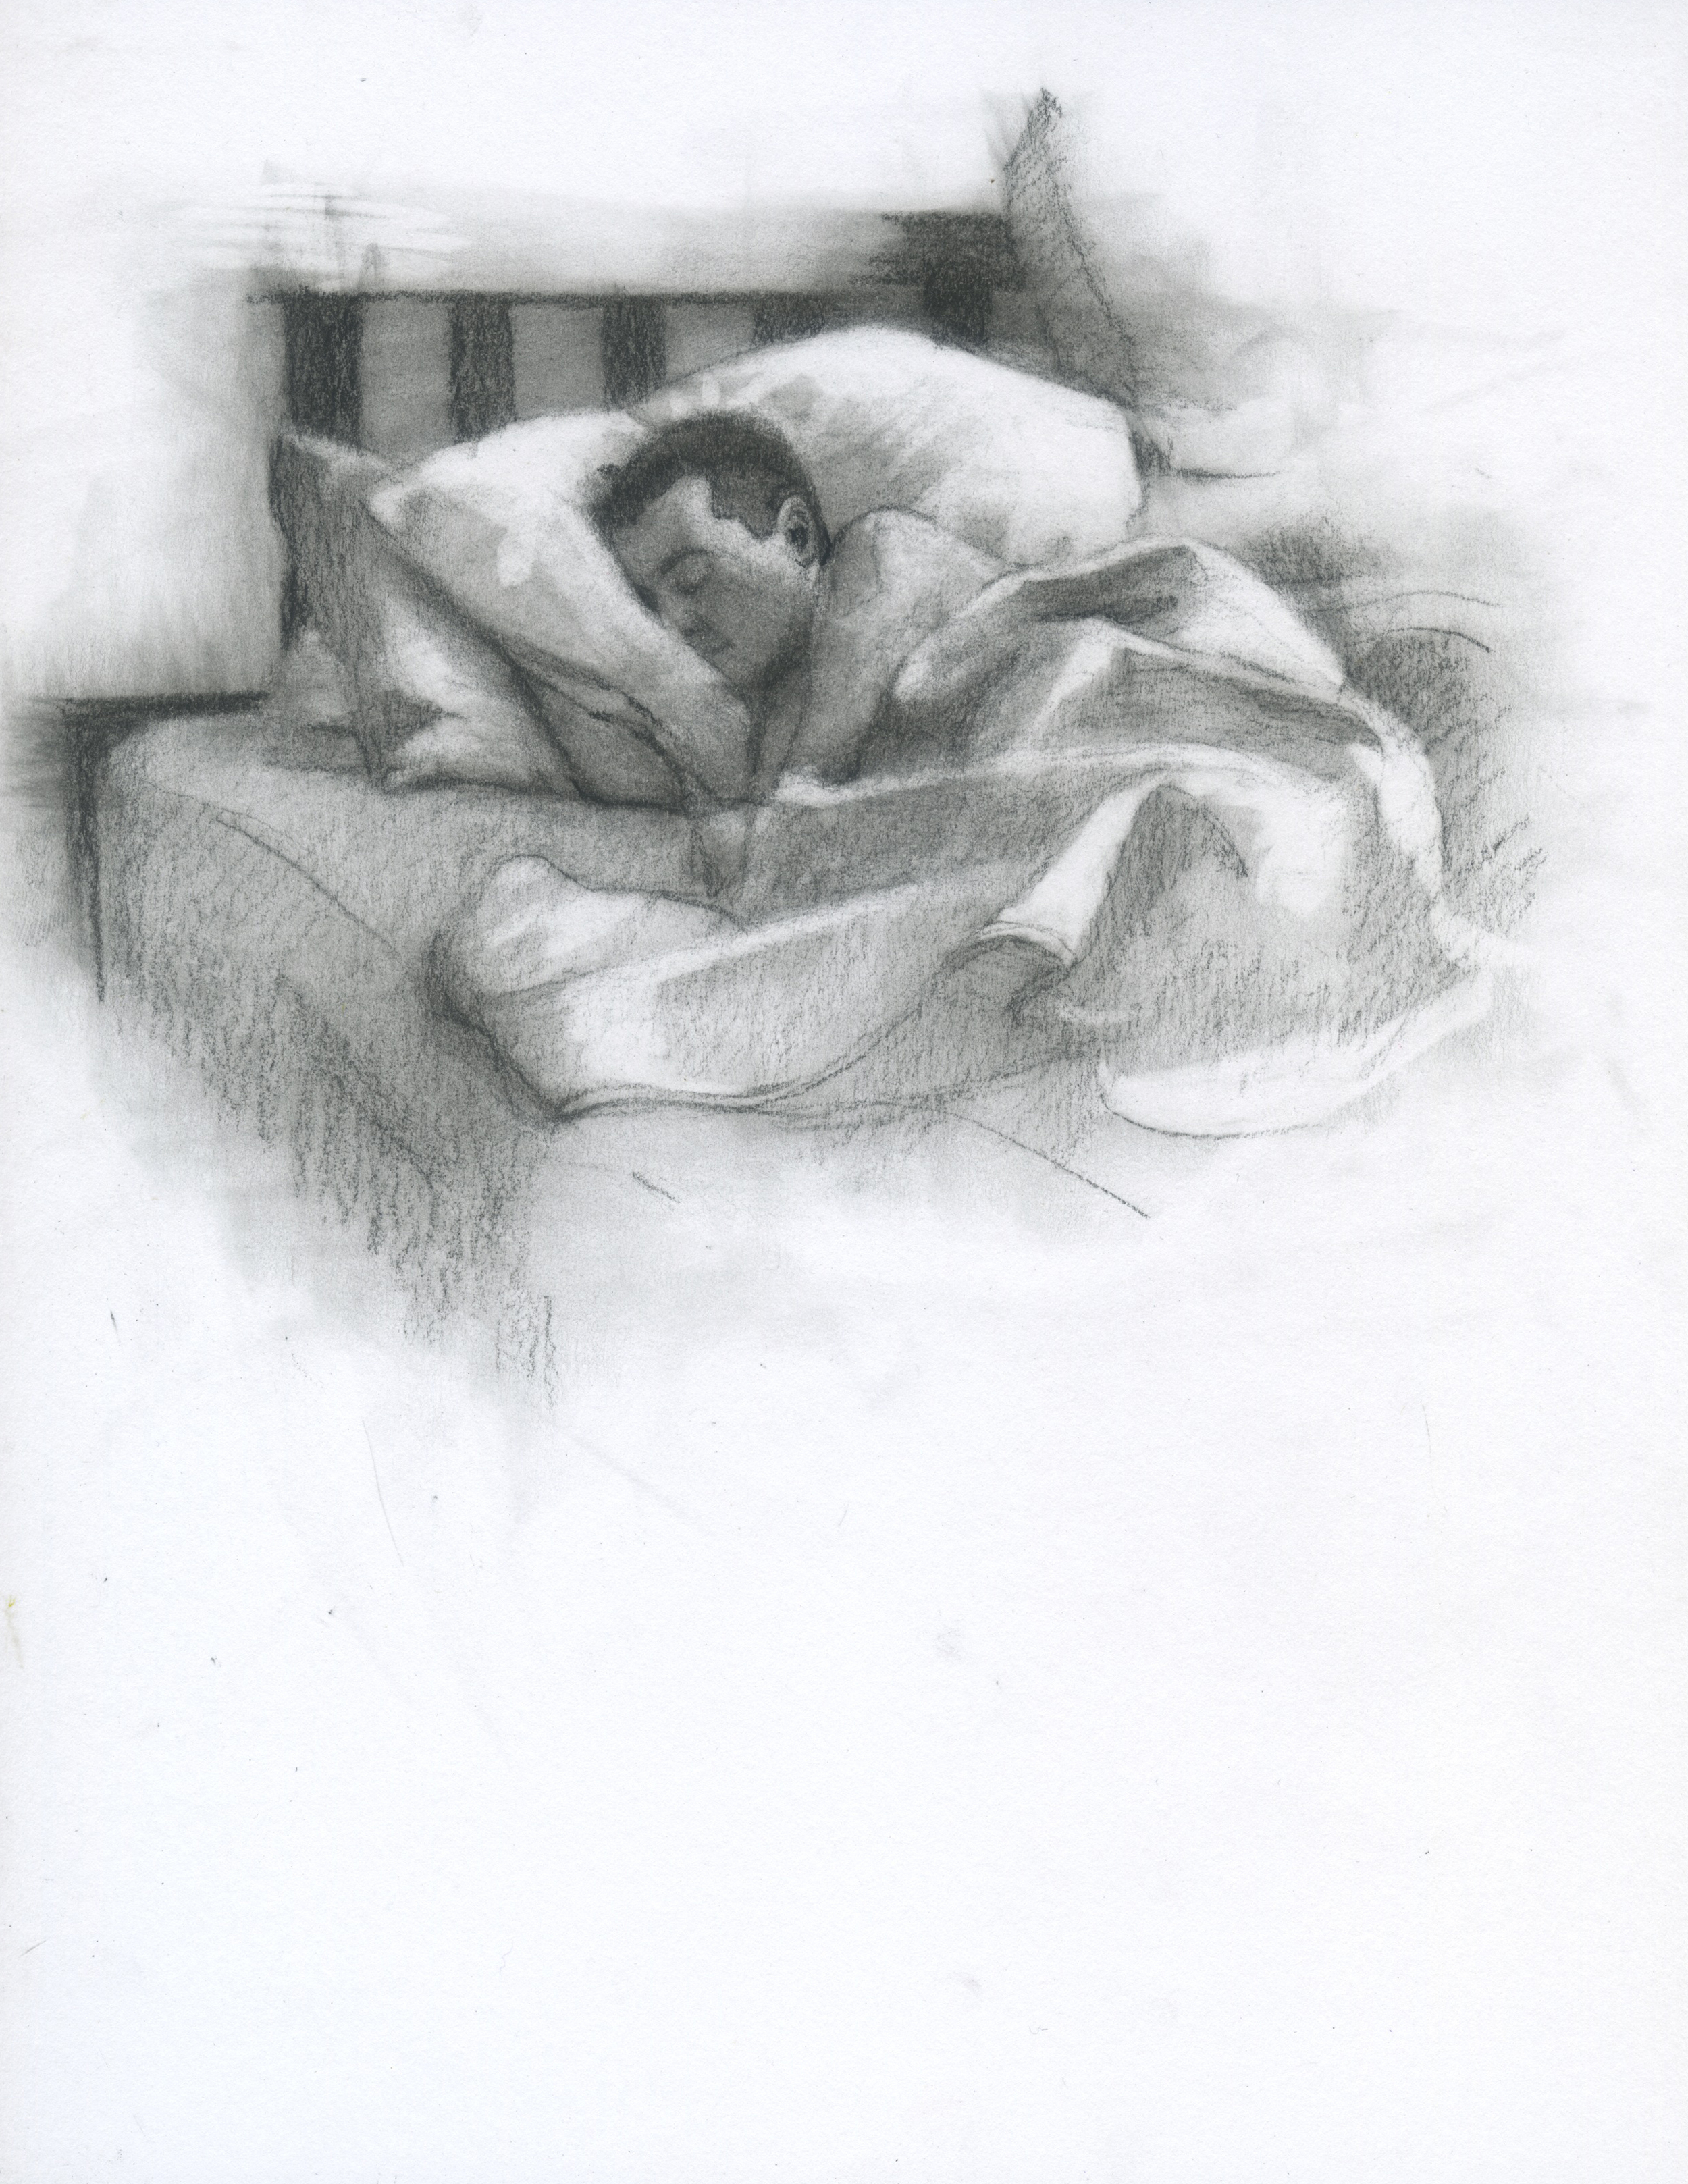 "Sleeping, charcoal on paper, 11"" x 8.5"", 2014"